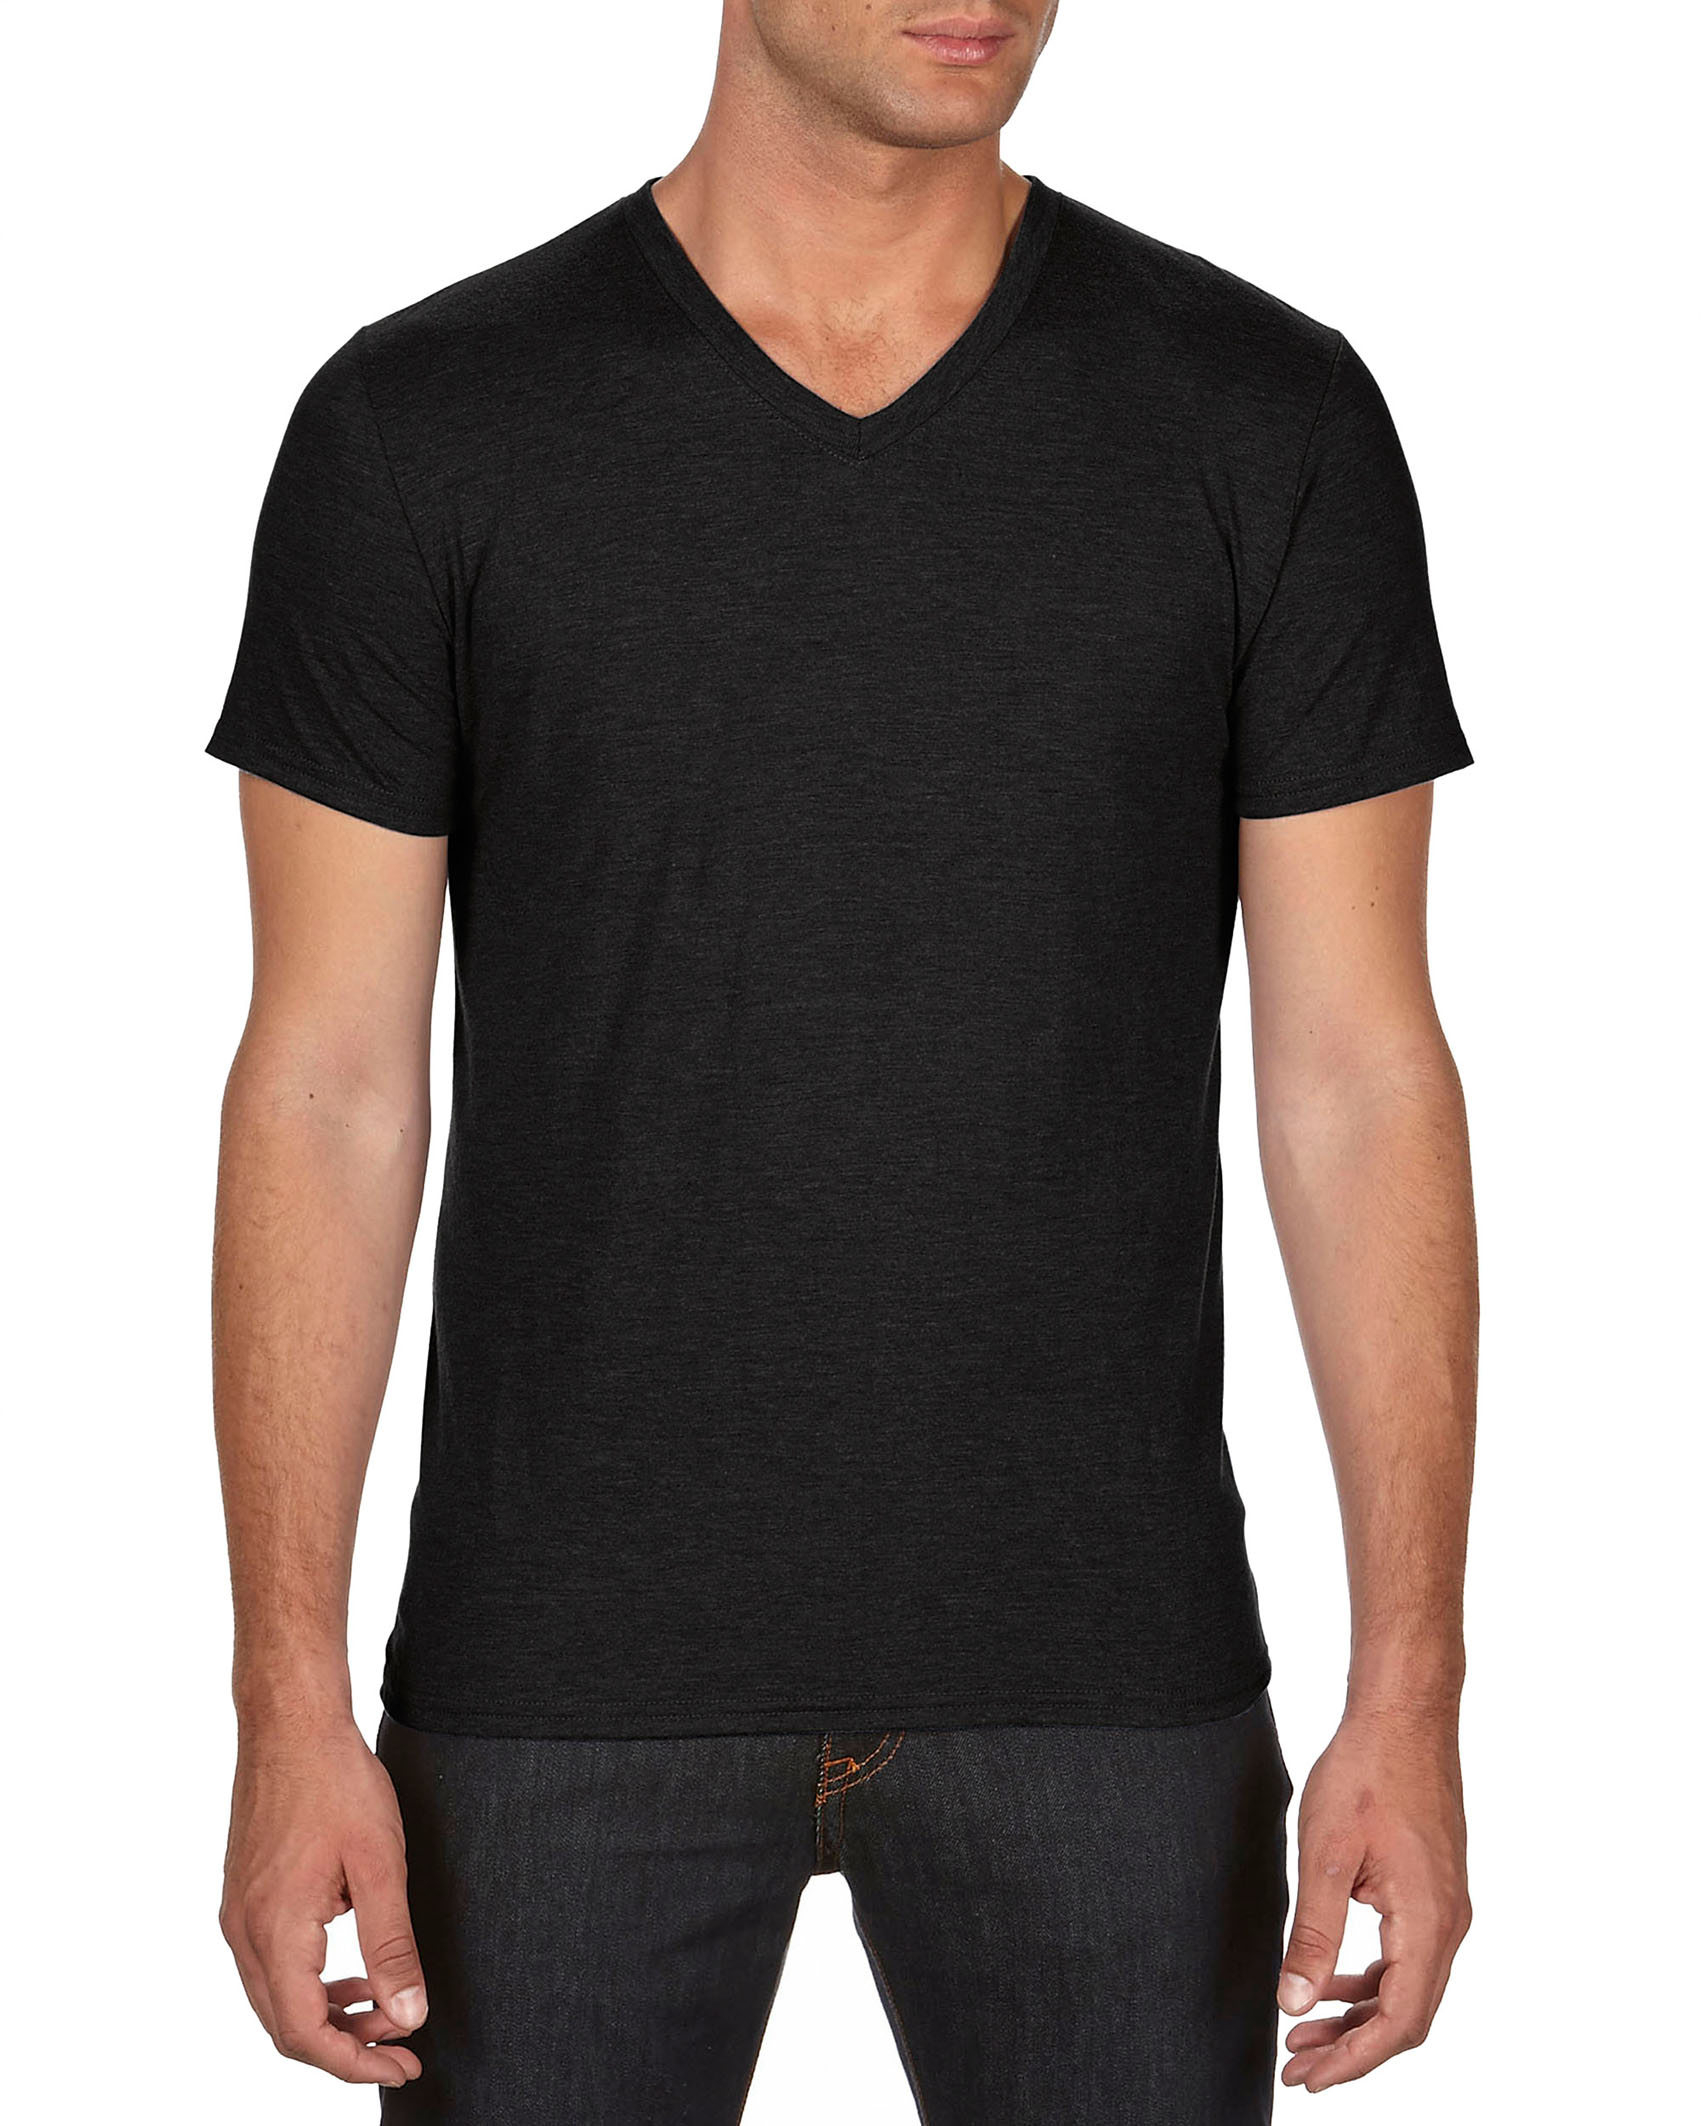 Anvil T-shirt TriBlend V-neck for him